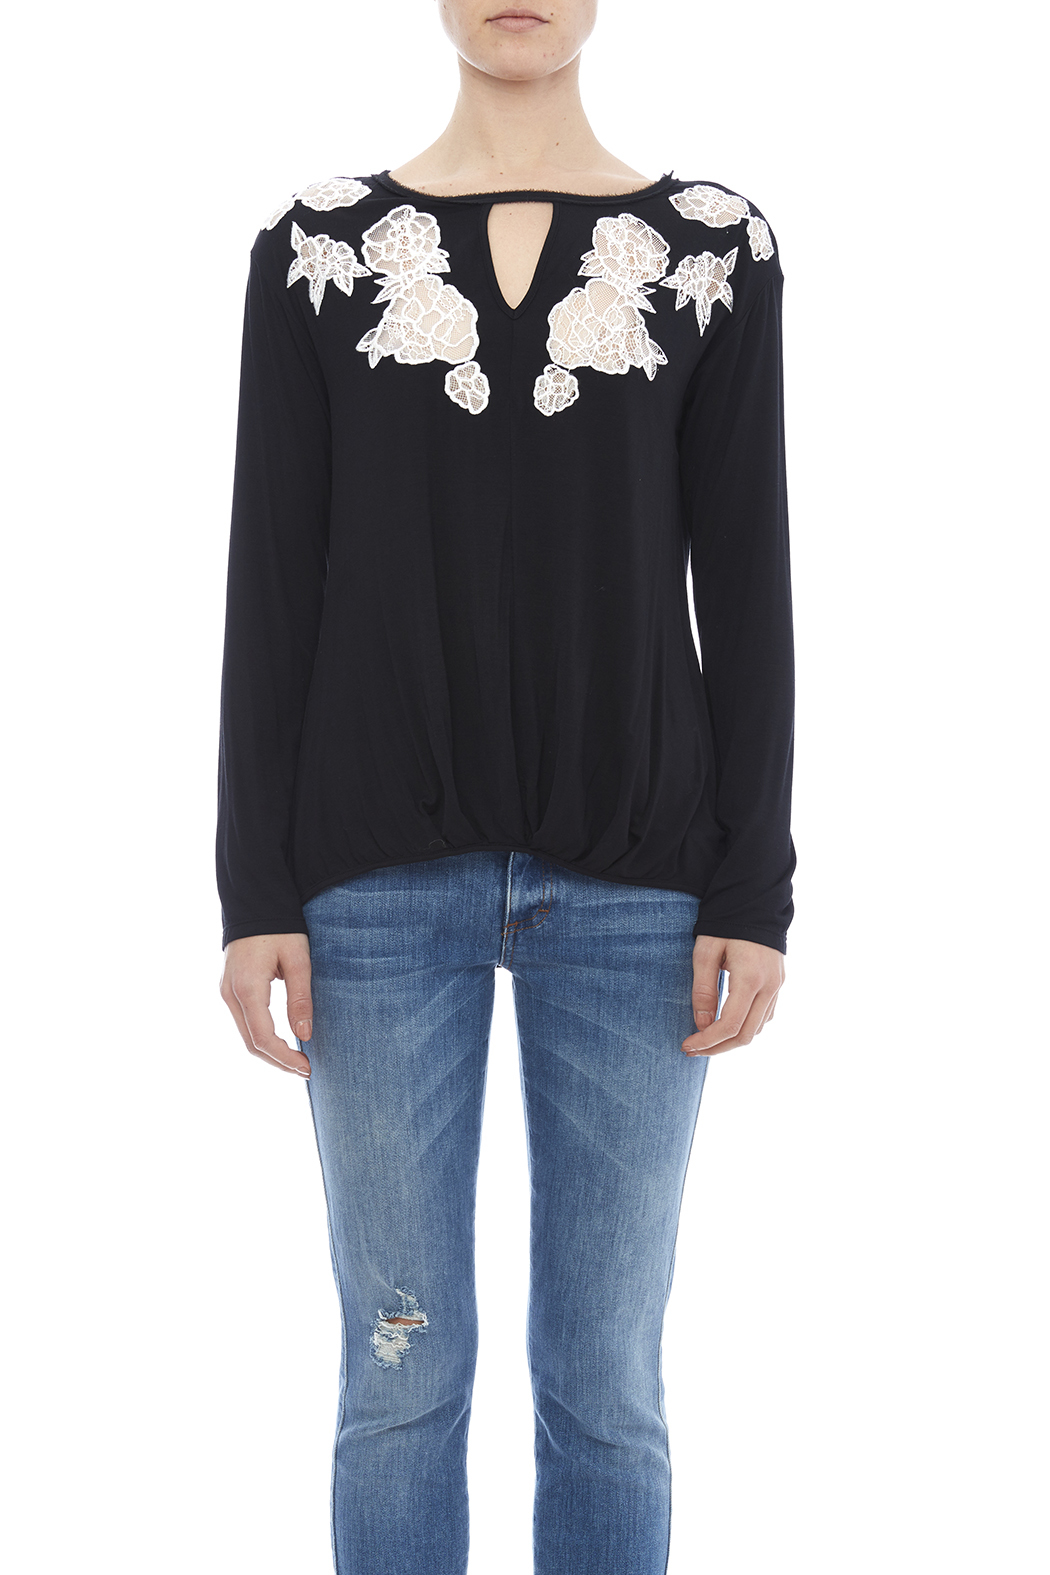 Ella Moss Lace Inset Top - Side Cropped Image